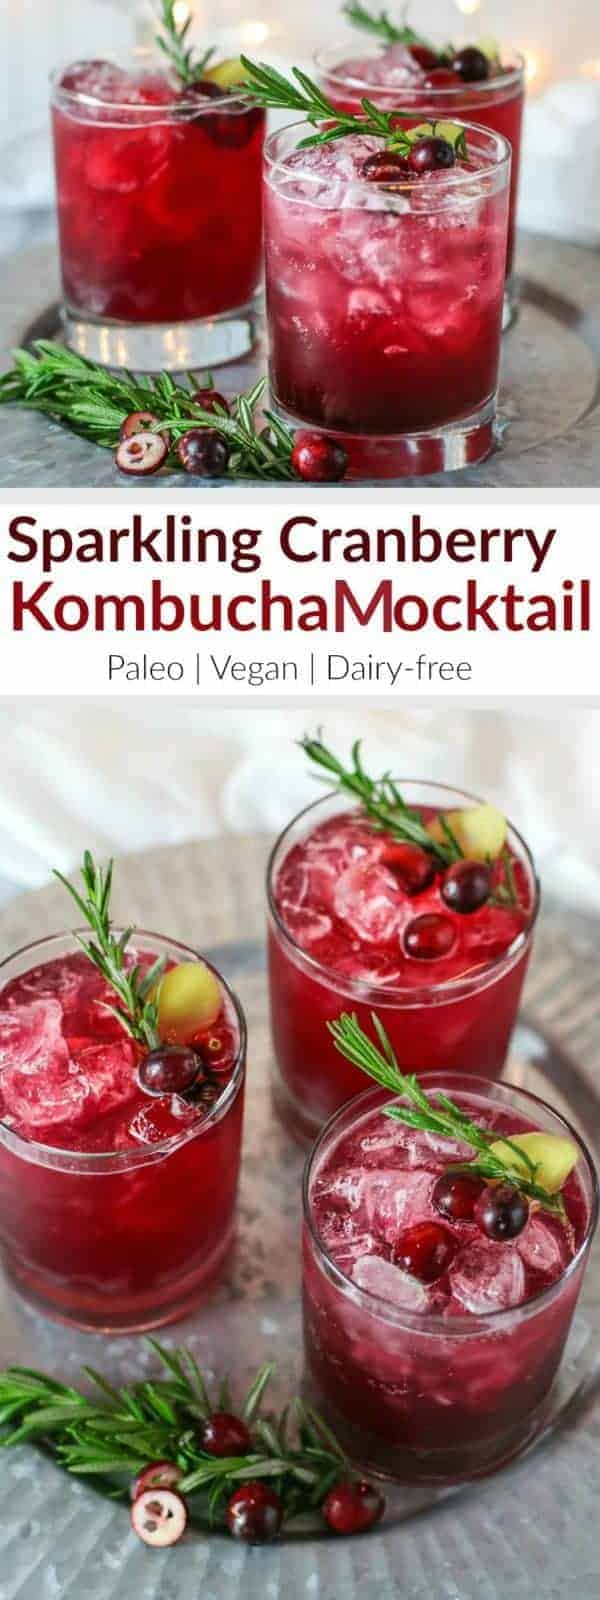 Sparkling Cranberry Kombucha Mocktail | This alcohol-free mocktail is a refreshing and stunning alternative to other holiday cocktails. The ginger and rosemary lend a festive touch and pair nicely with the tart cranberry juice. So now you can celebrate the night away without a headache or dehydration - plus you get a healthy dose of probiotics! | Paleo | Vegan | Dairy-free | therealfoodrds.com